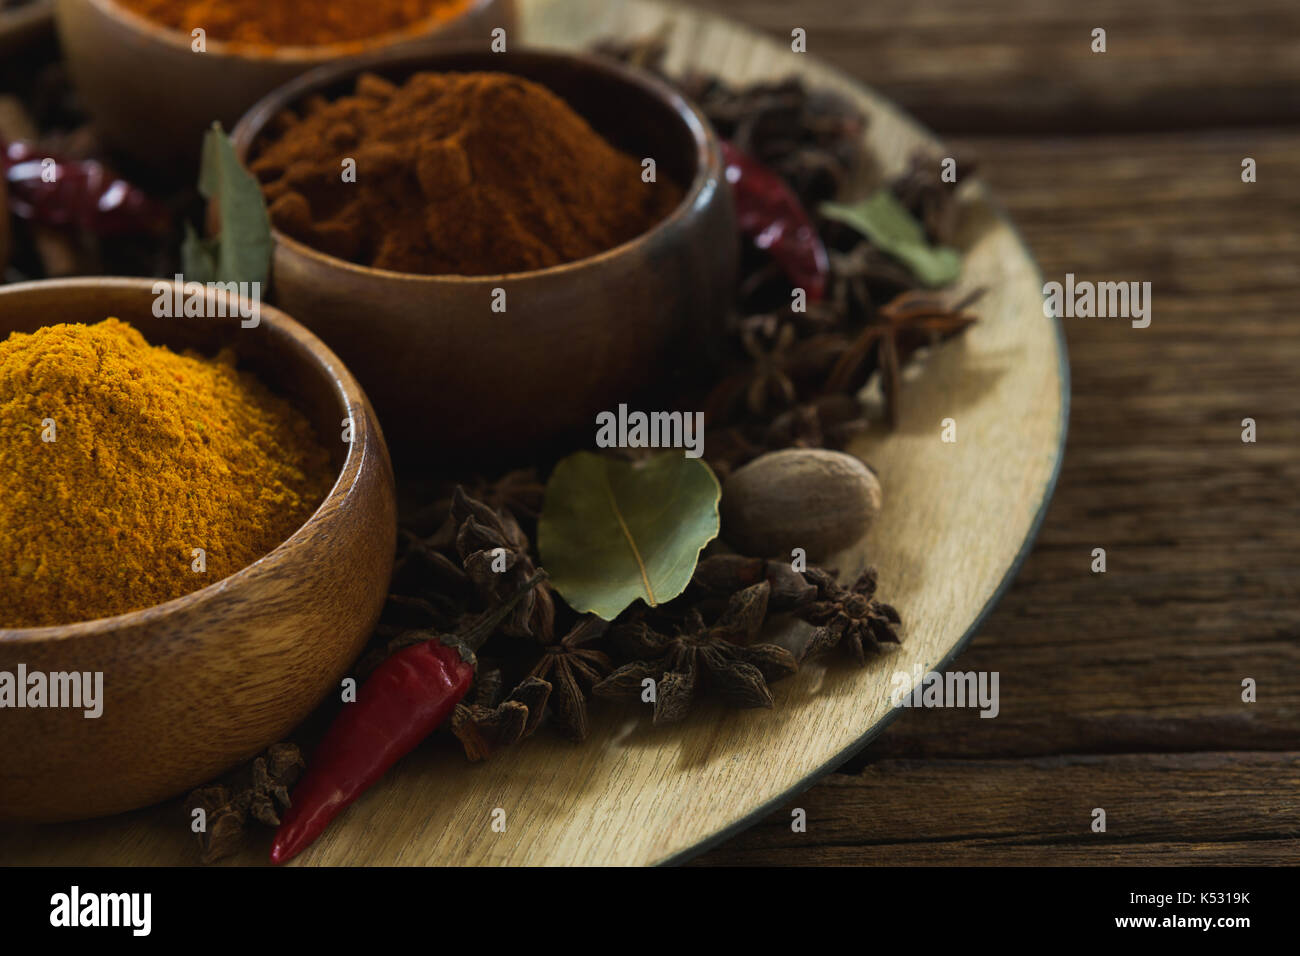 Close-up of various type of spices in bowl - Stock Image